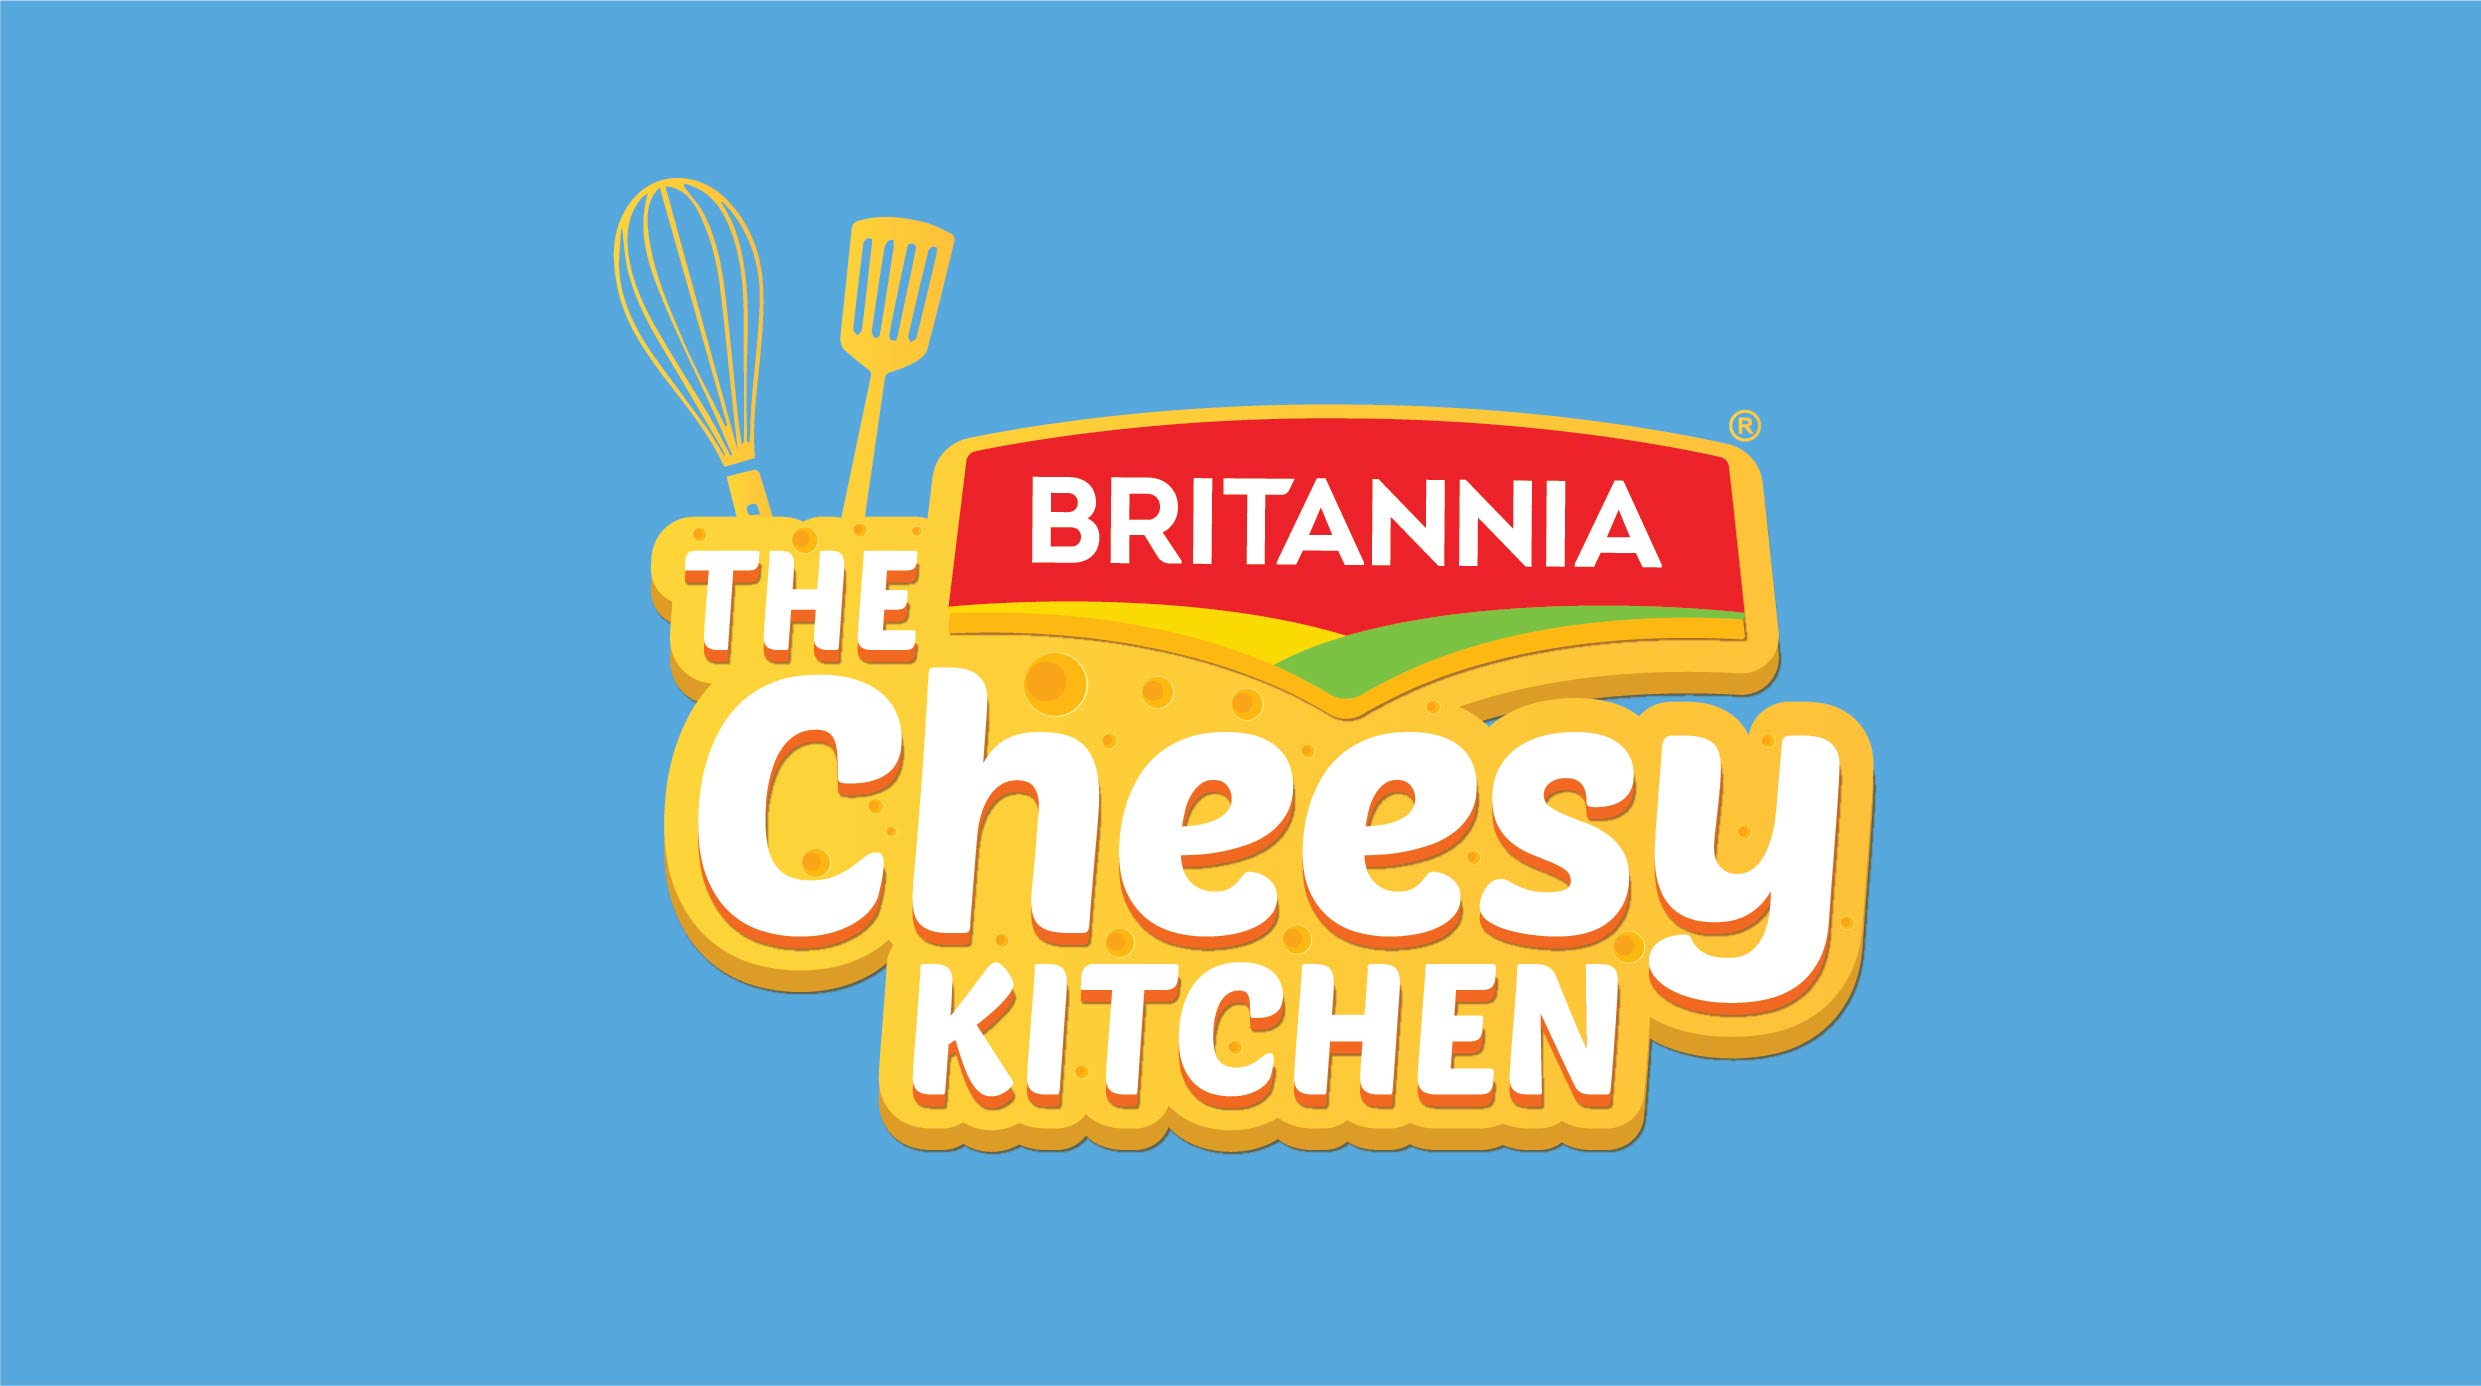 Britannia Cheese proudly offers the widest range of cheese in India- Slices, Cubes, Blocks, Spreads, Pizza Cheese, Low-fat cheese and Cream Cheese.